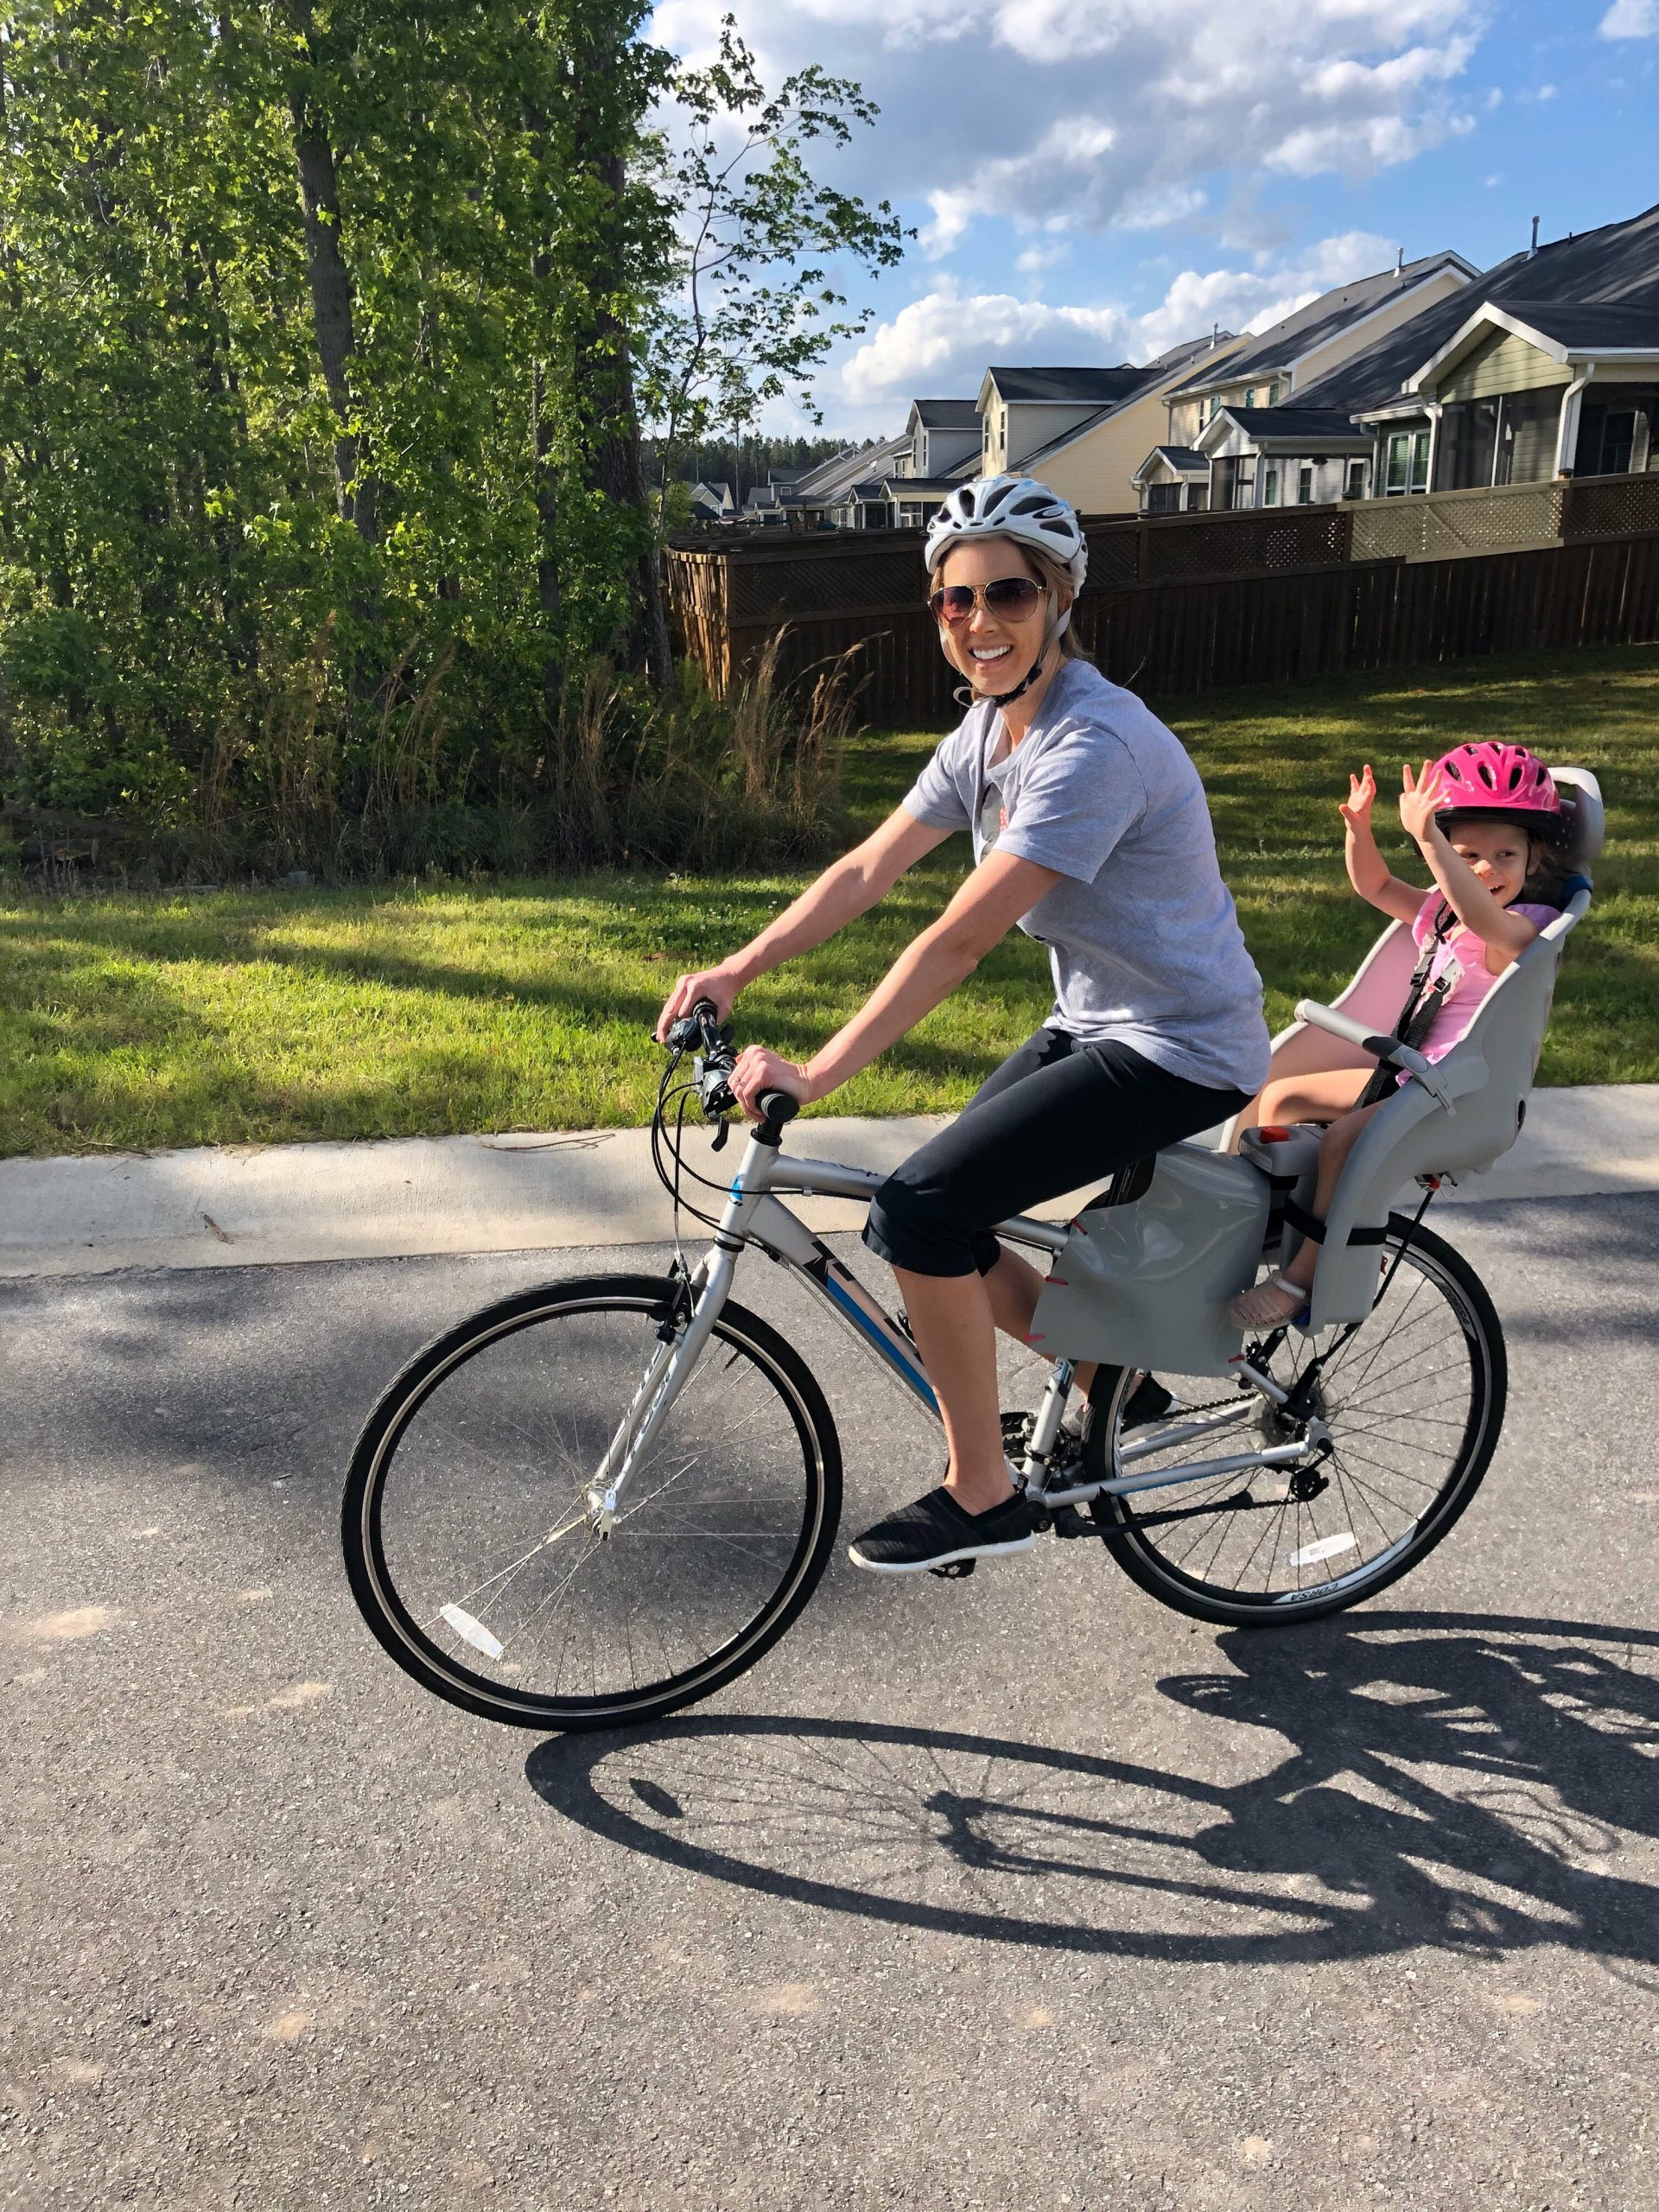 Mom on bike with daughter in bike seat.